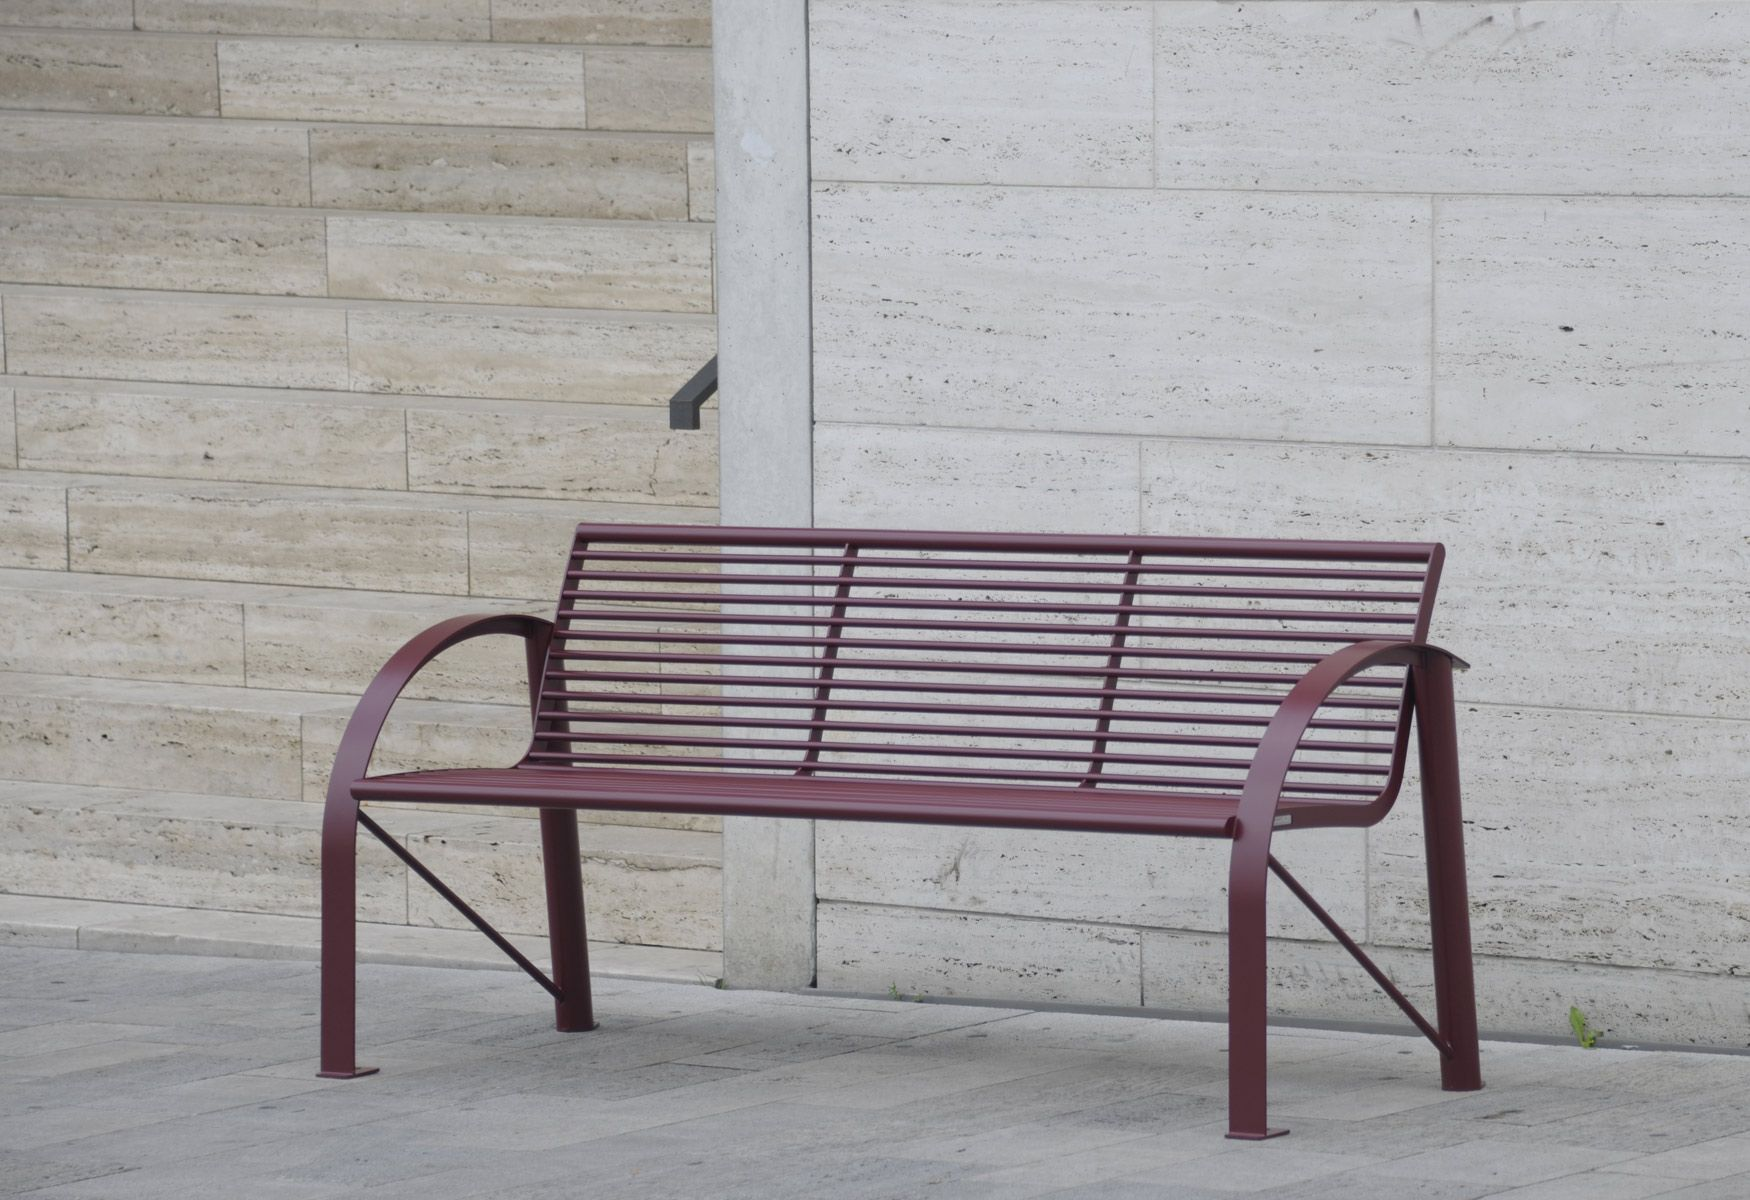 BENKERT BÄNKE | Street furniture / Benches | Pinterest | Street ...